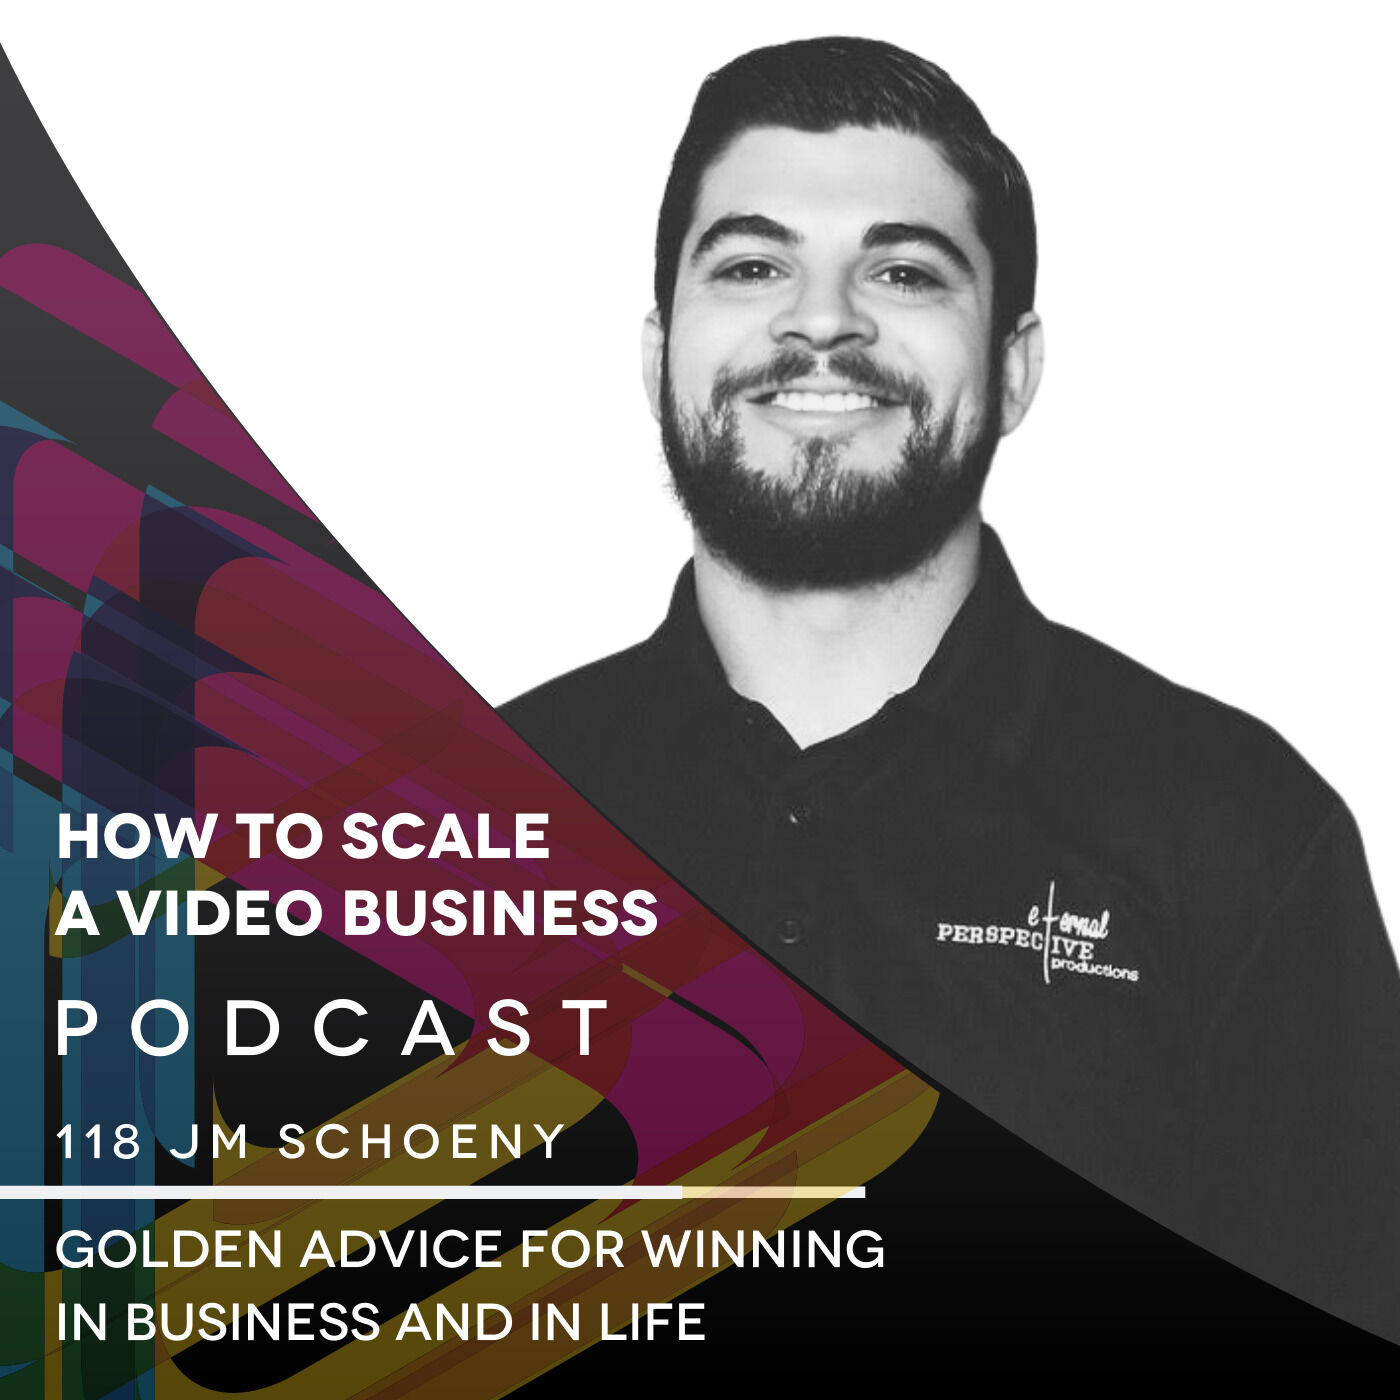 Golden advice for winning in business and in life. EP #118 - JM Schoeny